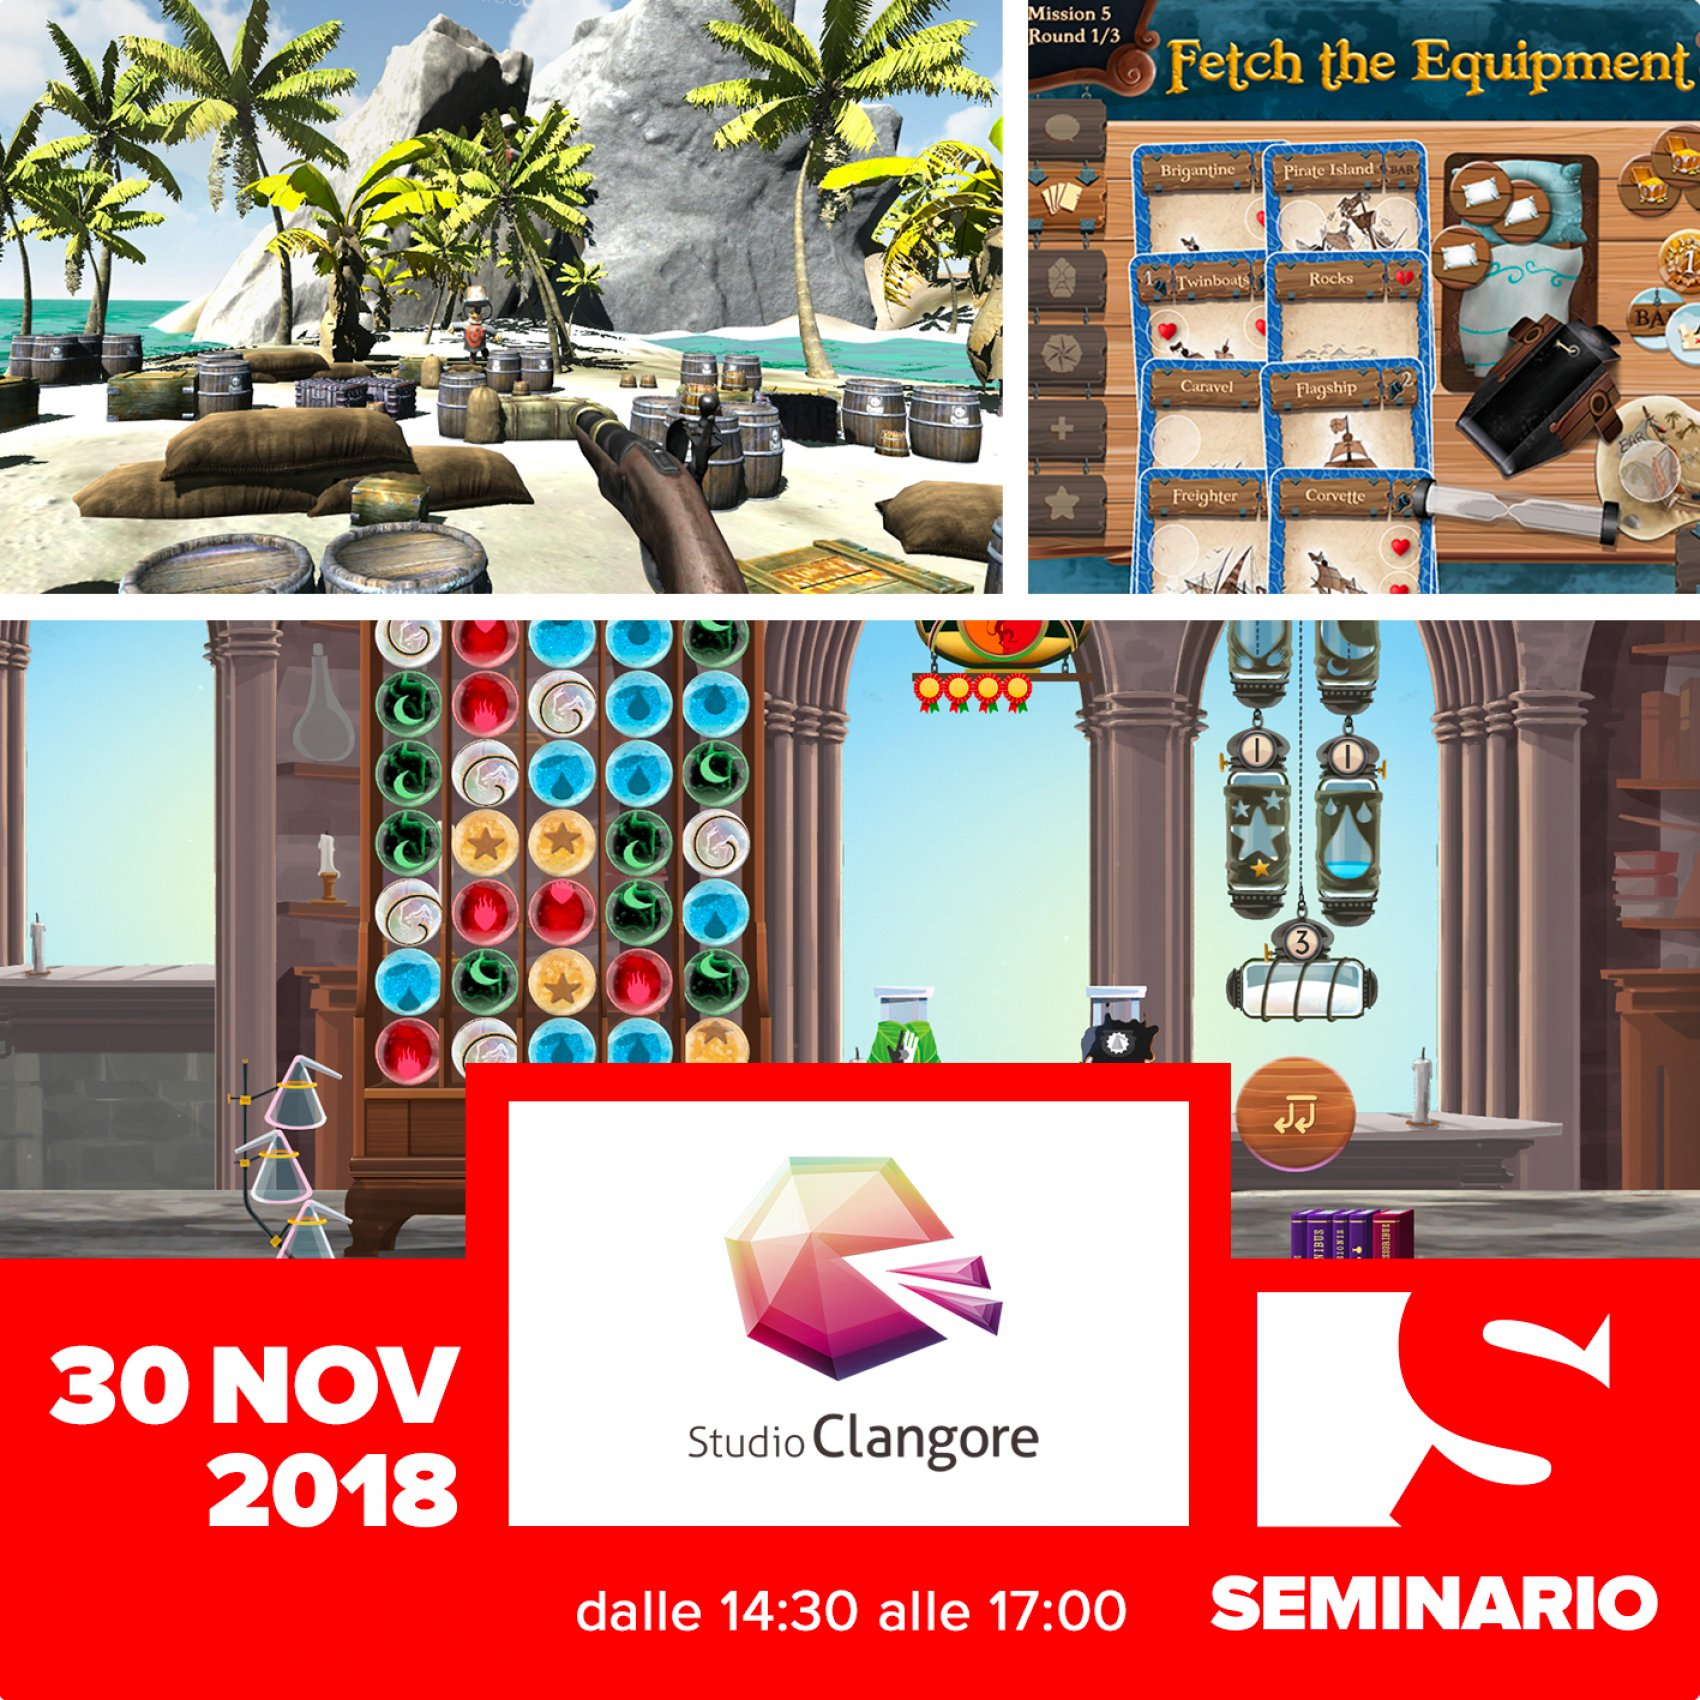 SEMINARIO – DARIO DEPONTI Wireframing your way out, or how User Experience can help game design!